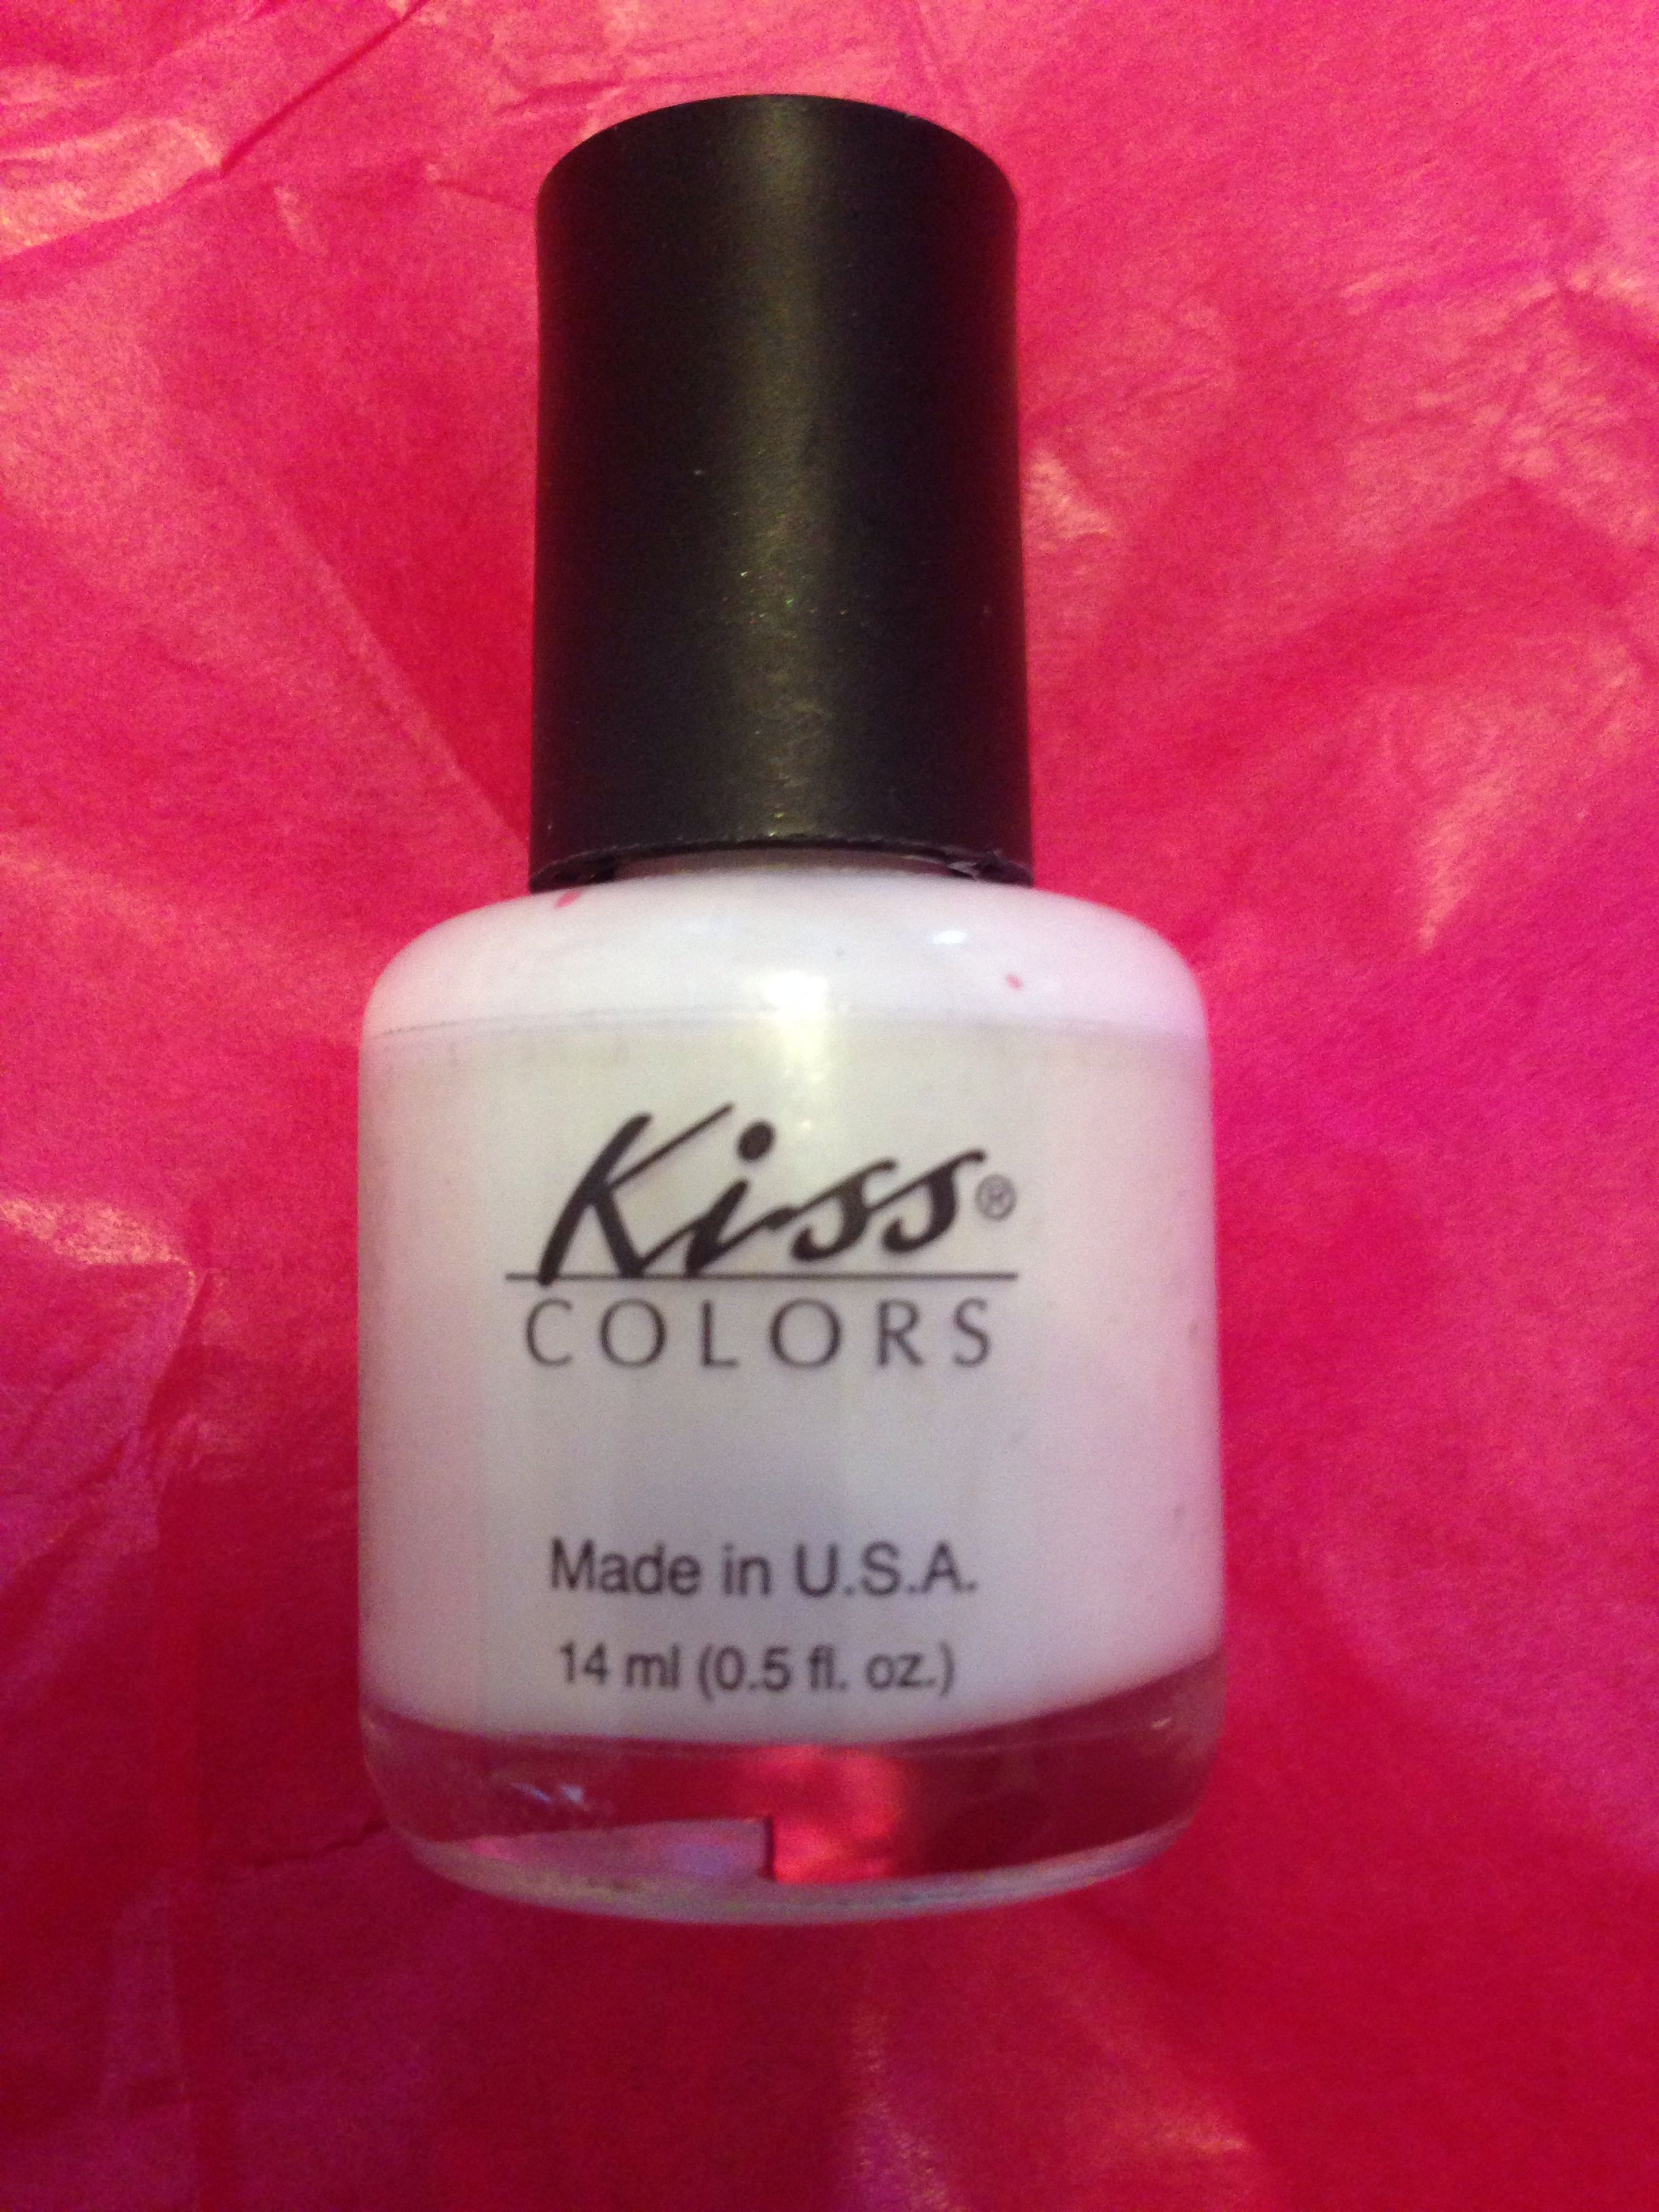 Kiss colors nail polish in white | SWAP BOARD :) | Pinterest | Color ...